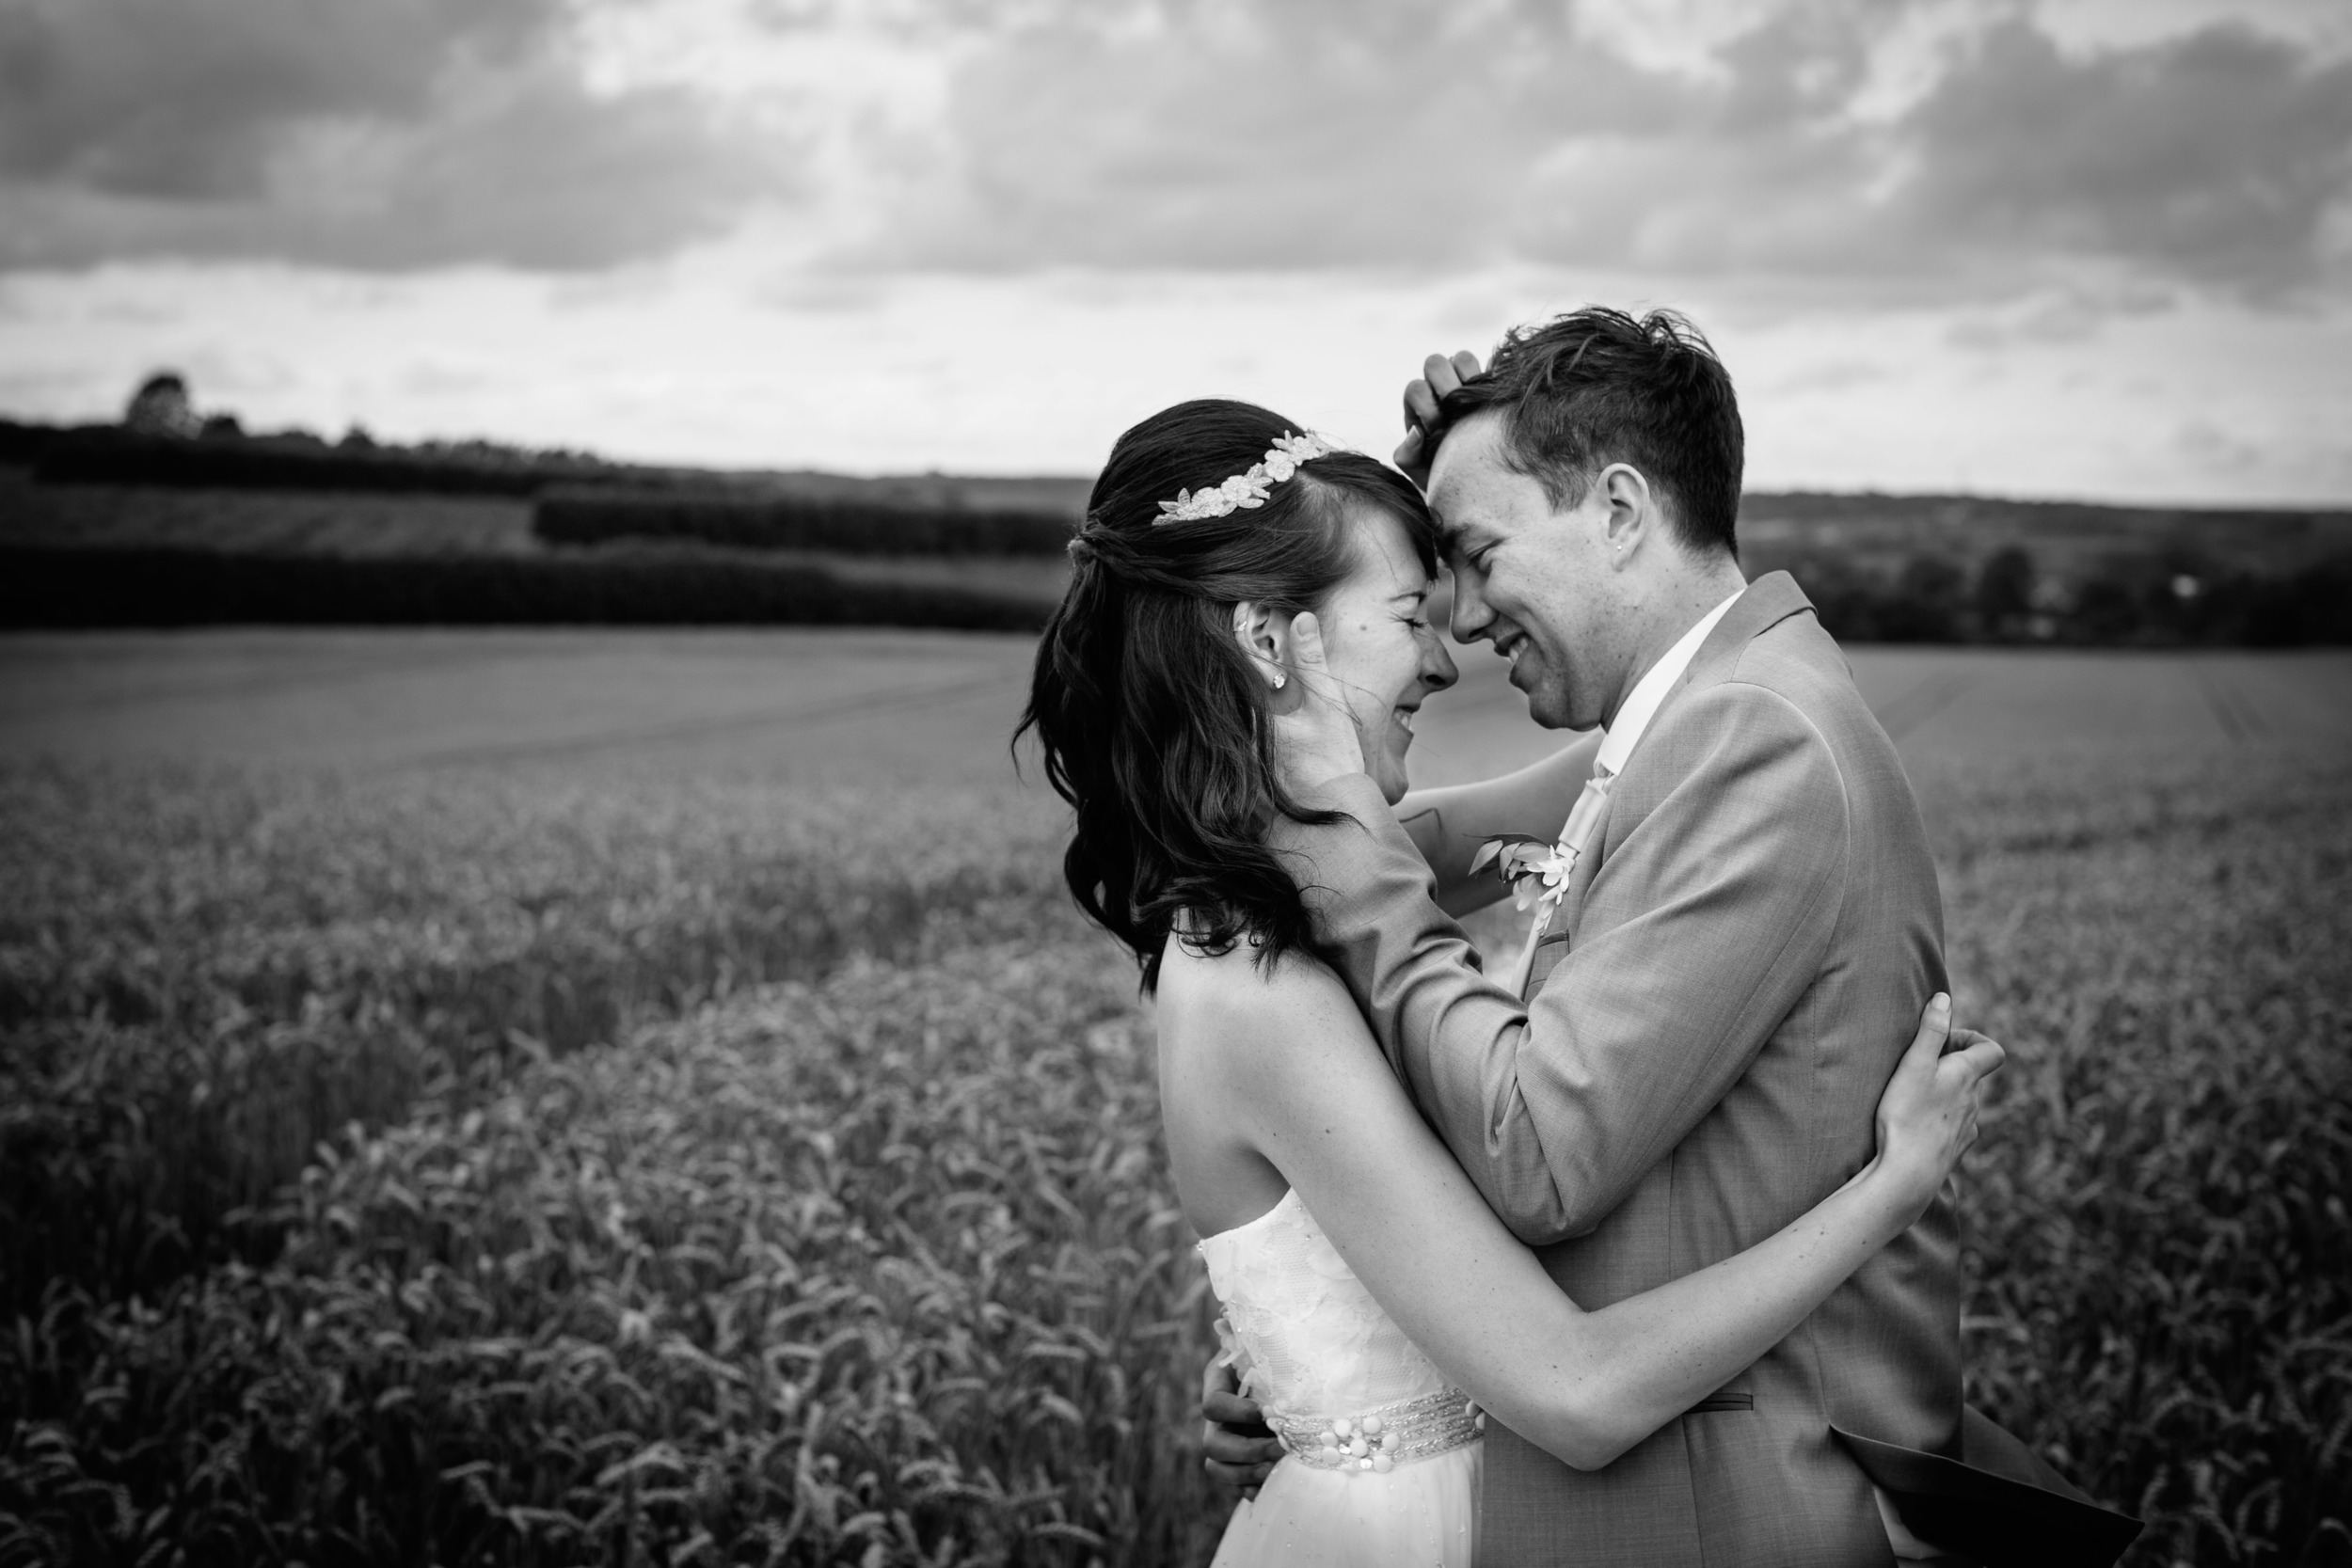 Sarah and Joe - Cantebury